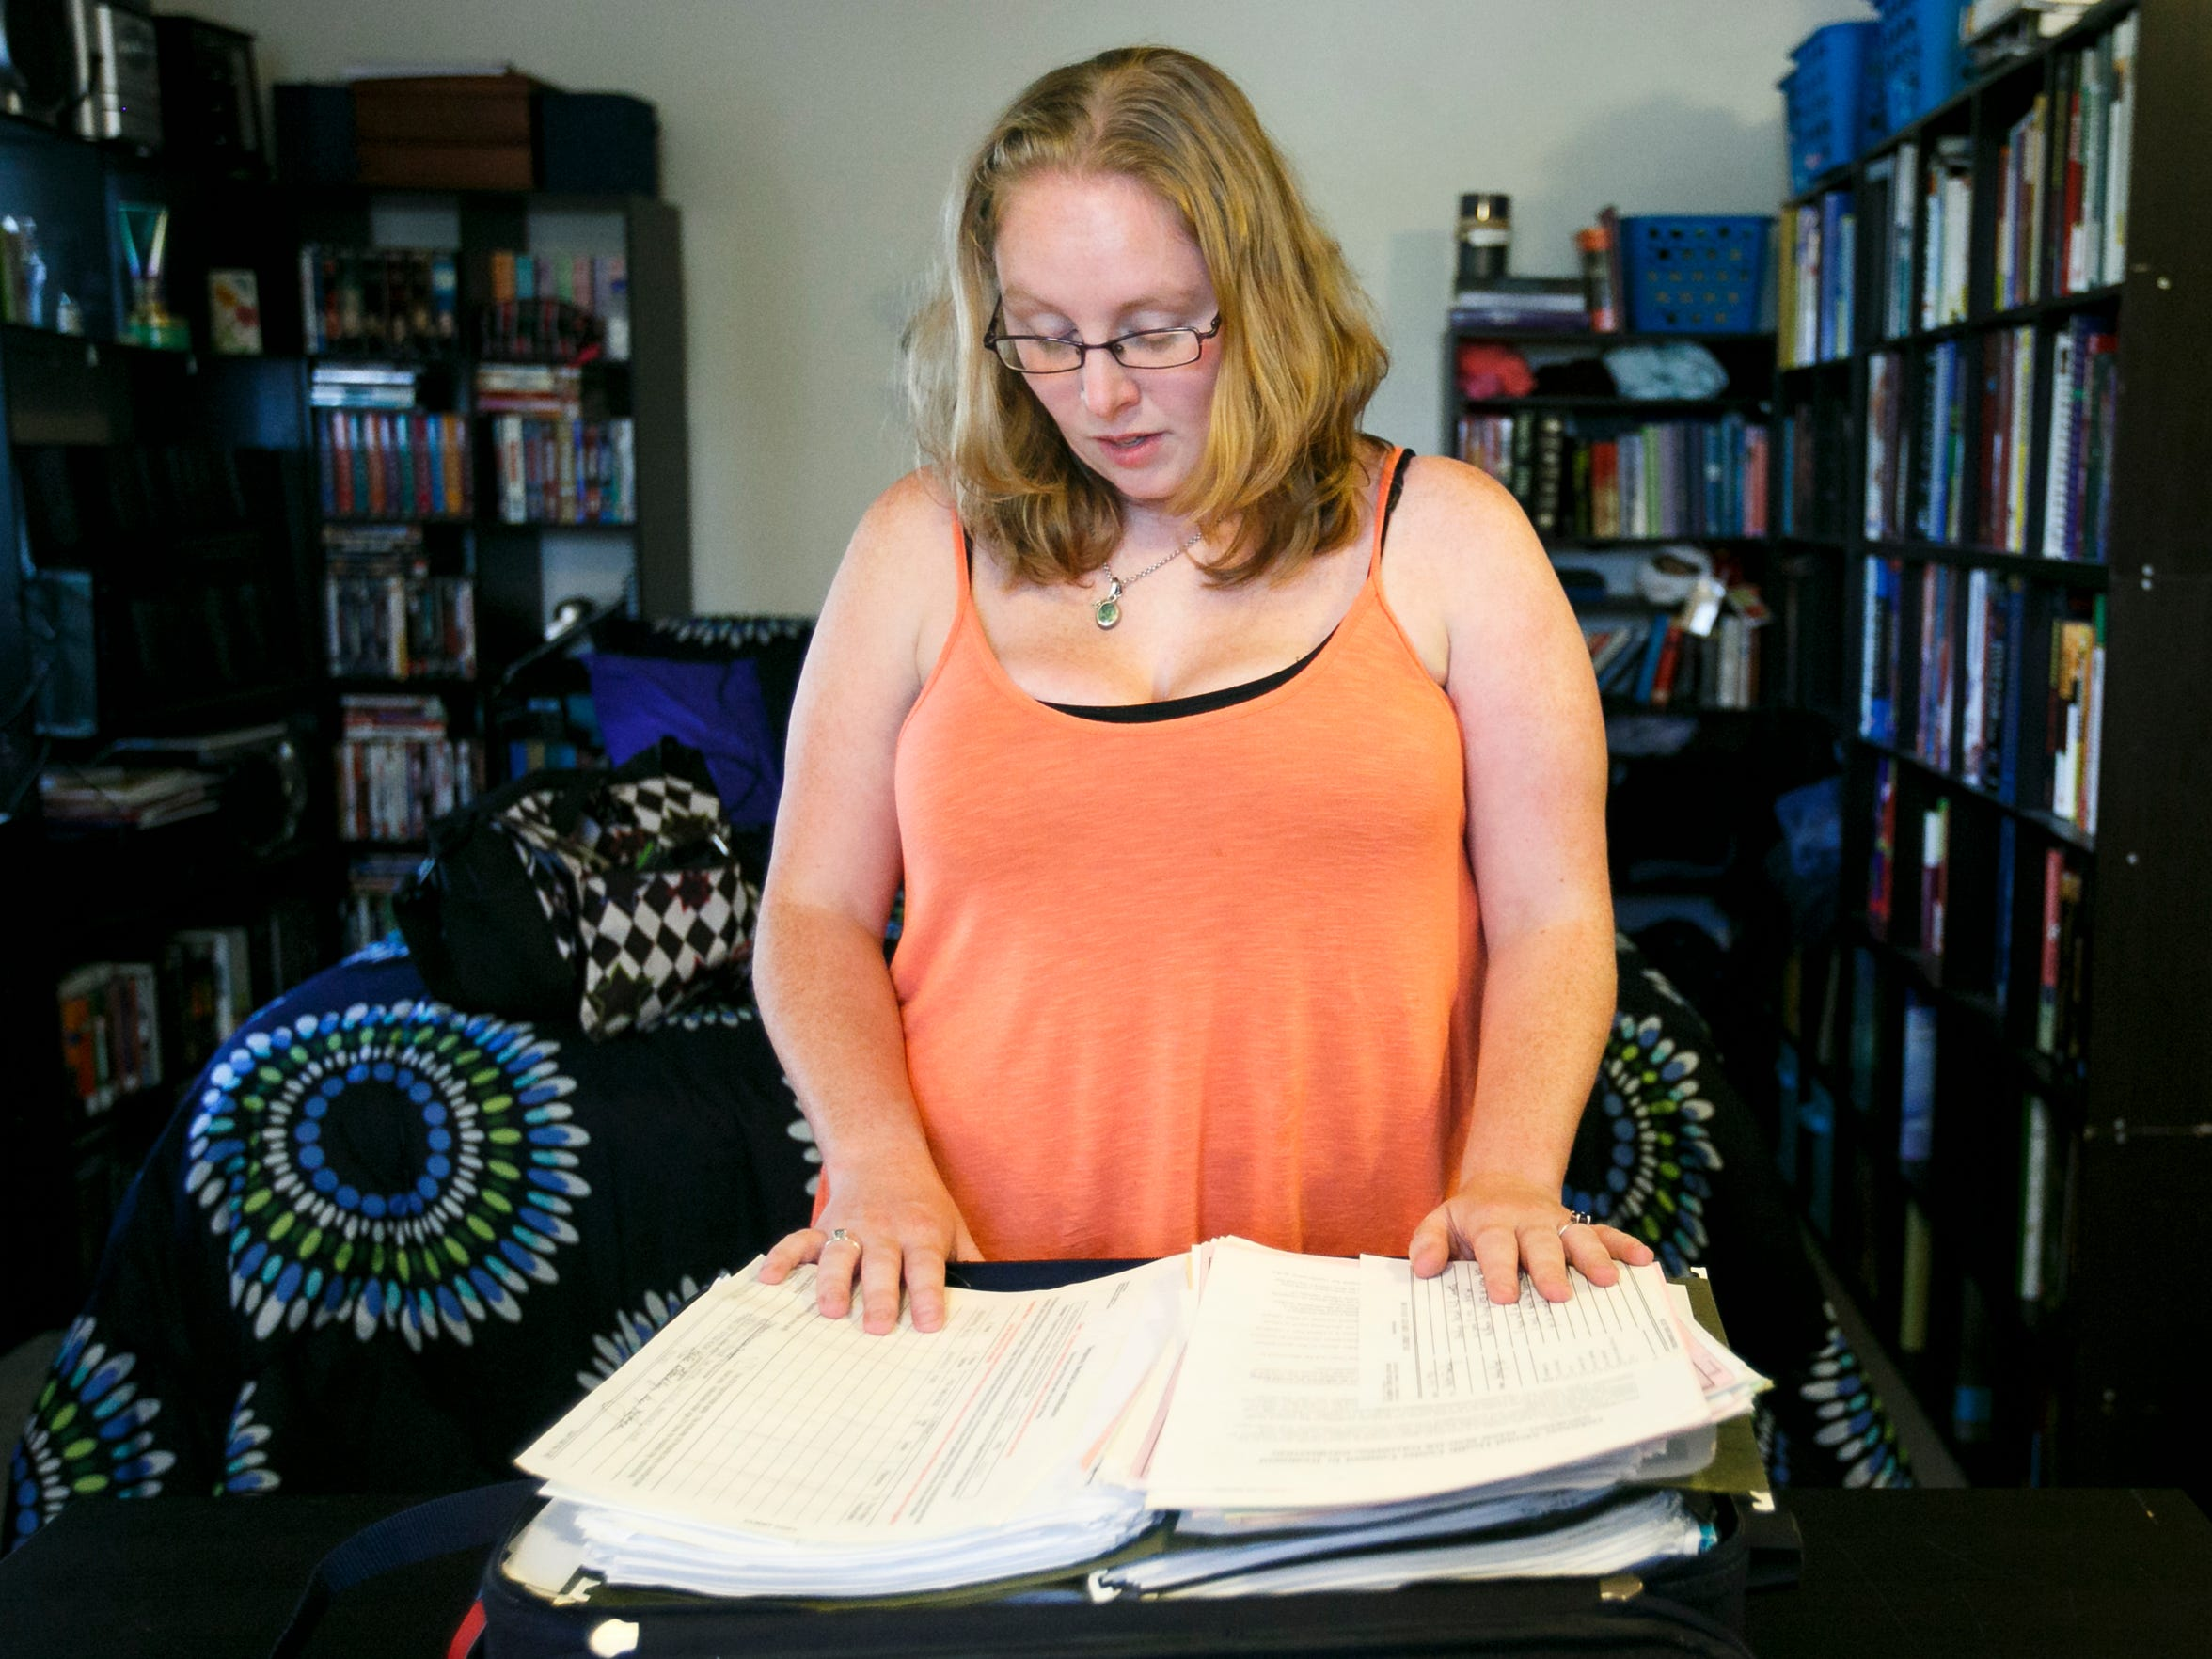 Mia Storm looks at a suitcase full of her medical records and reports from the 14 years she spent in the foster care system. She was shuffled through nearly 20 foster homes and heavily medicated in the years she spent under state supervision. Now 32, she is working to gain her independence and raise her daughter Lily.